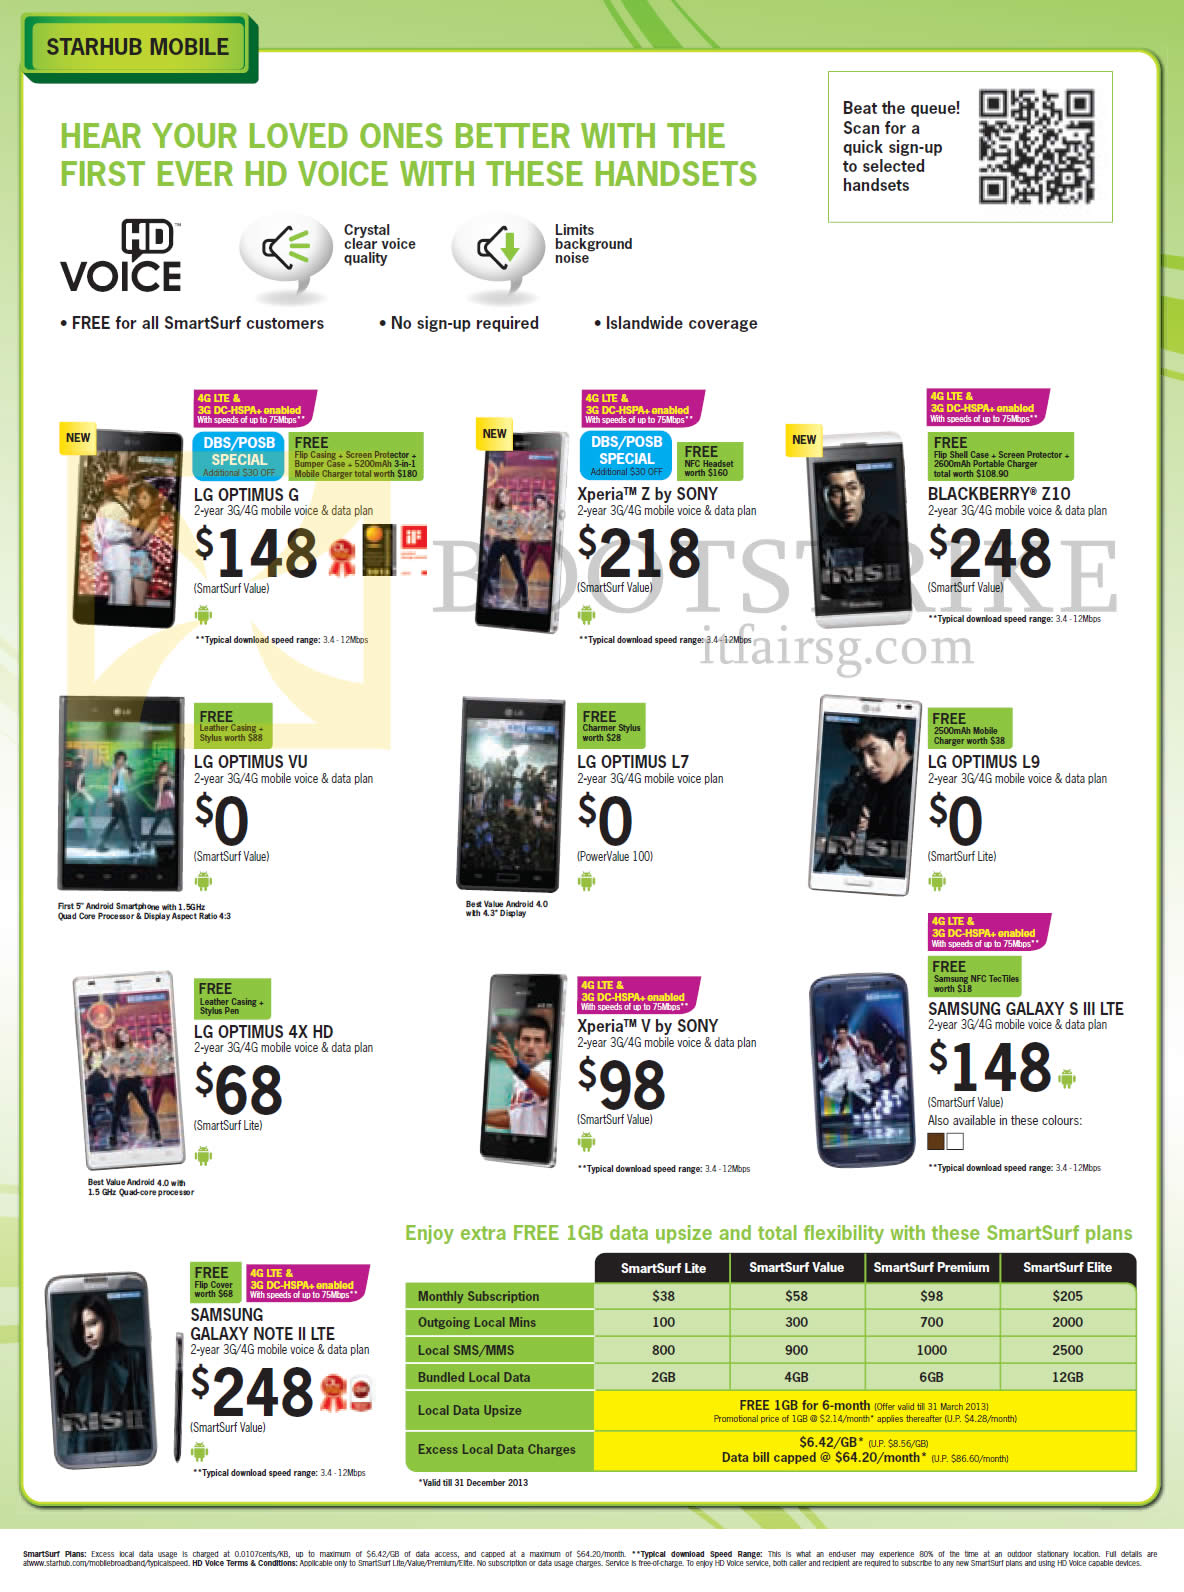 2013 price list image brochure of Starhub Mobile Phones LG Optimus